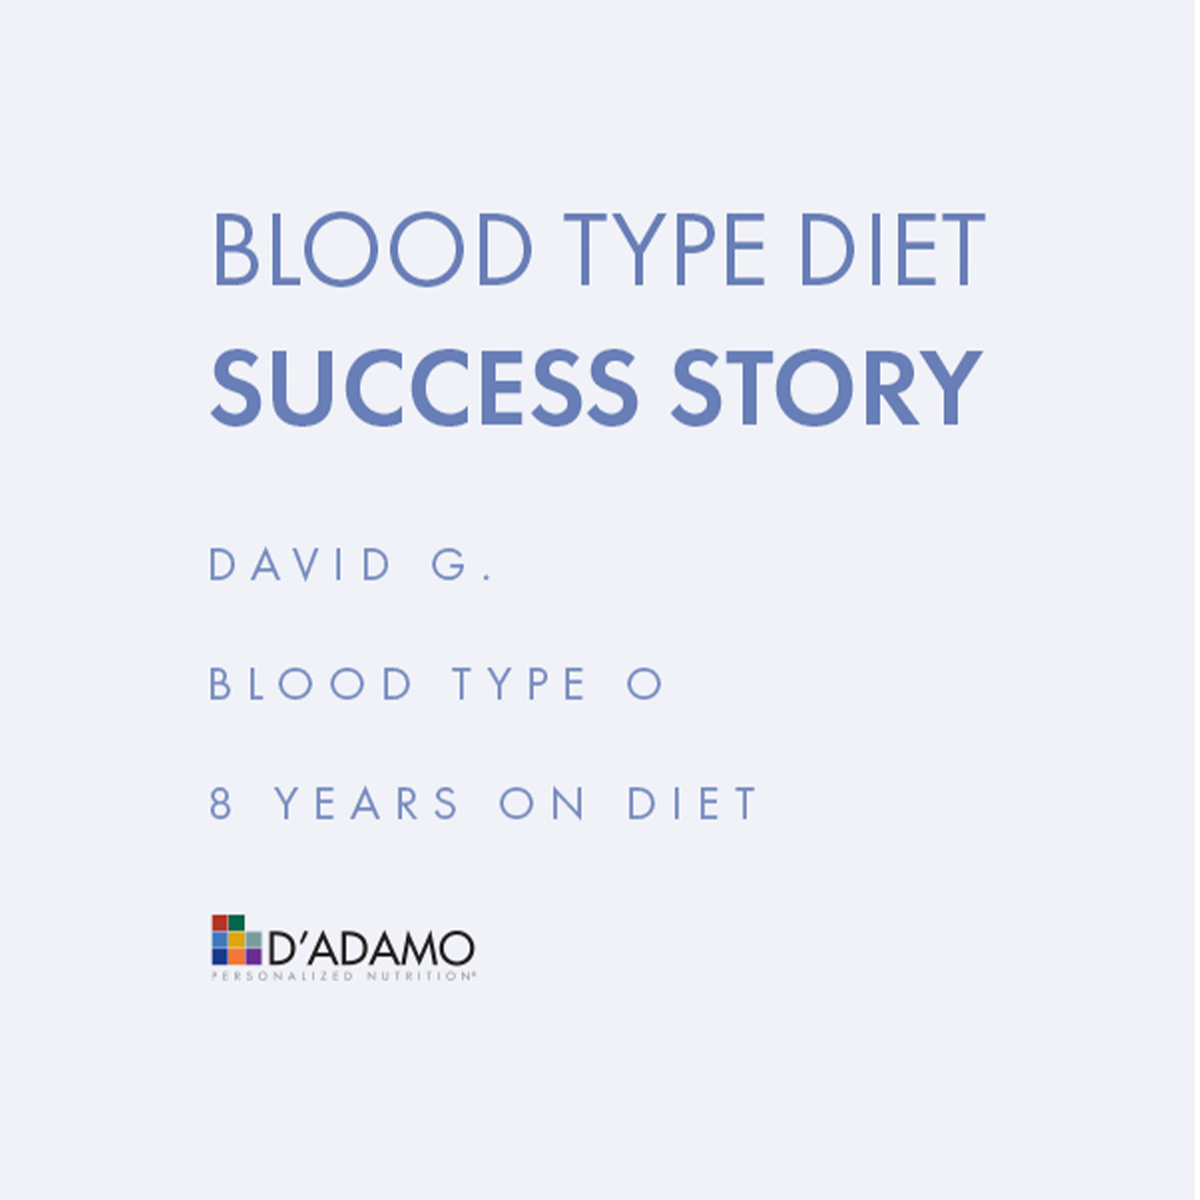 David G. - Blood Type Diet Success Story